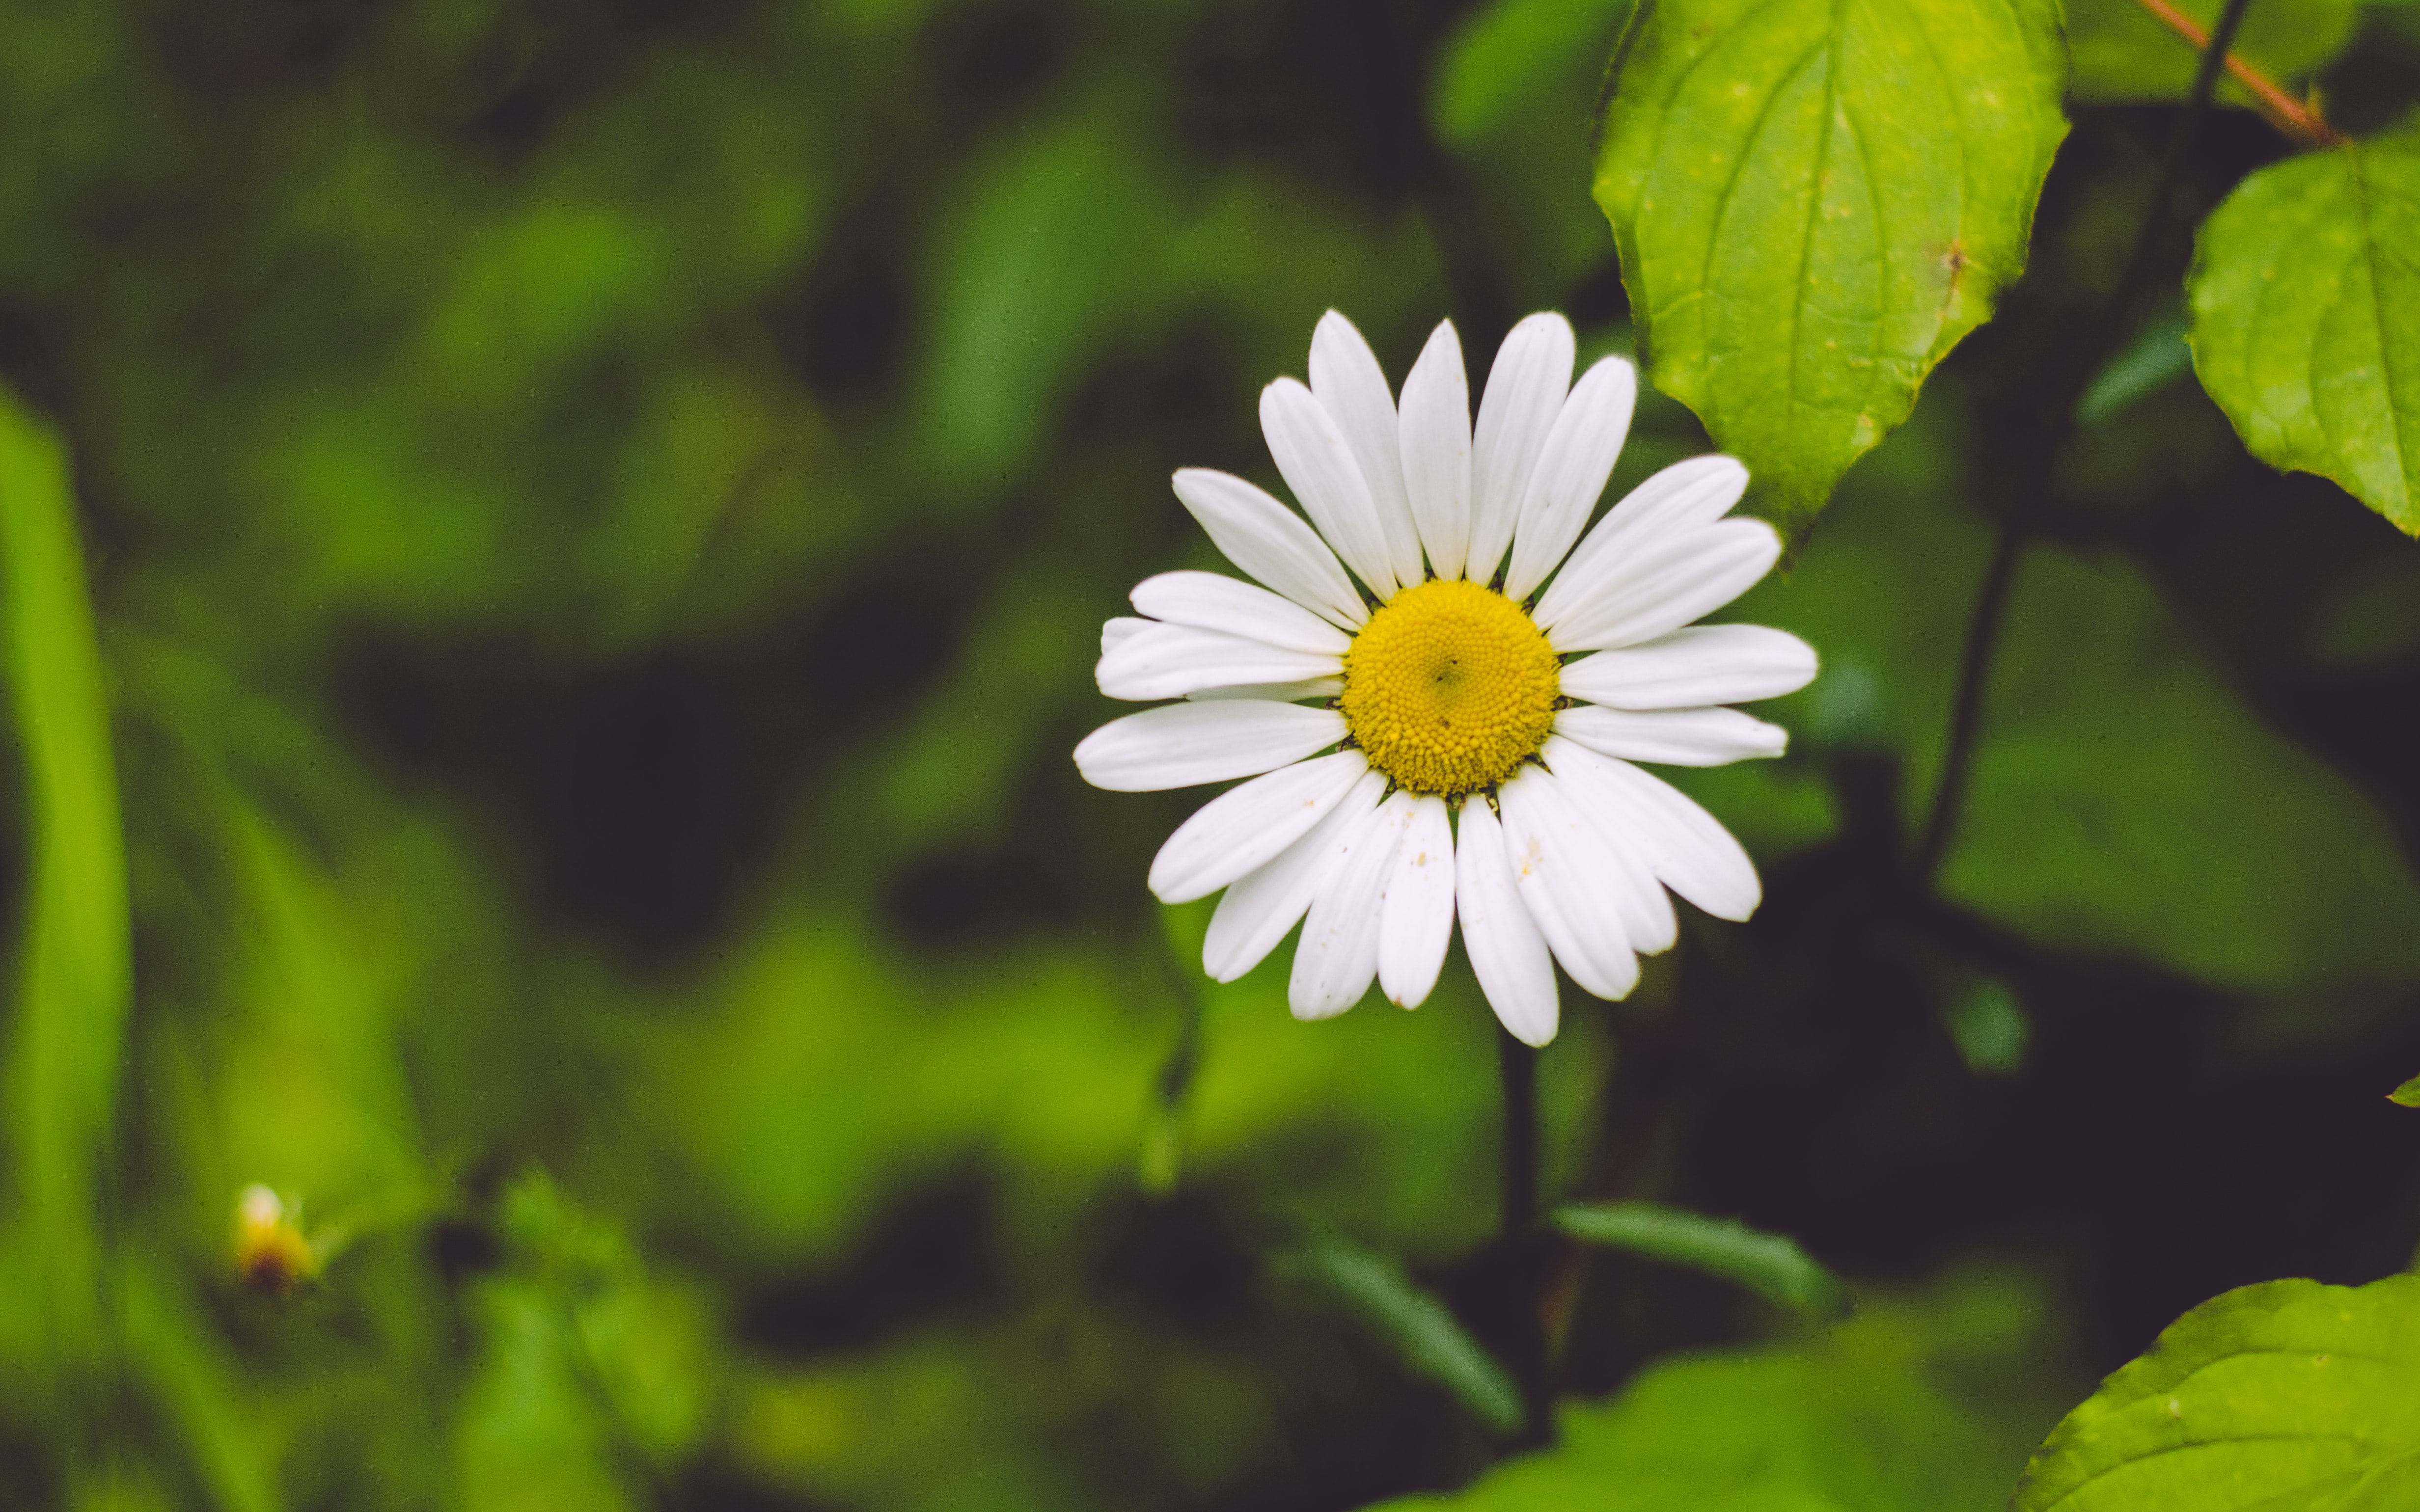 photo of white daisy flower